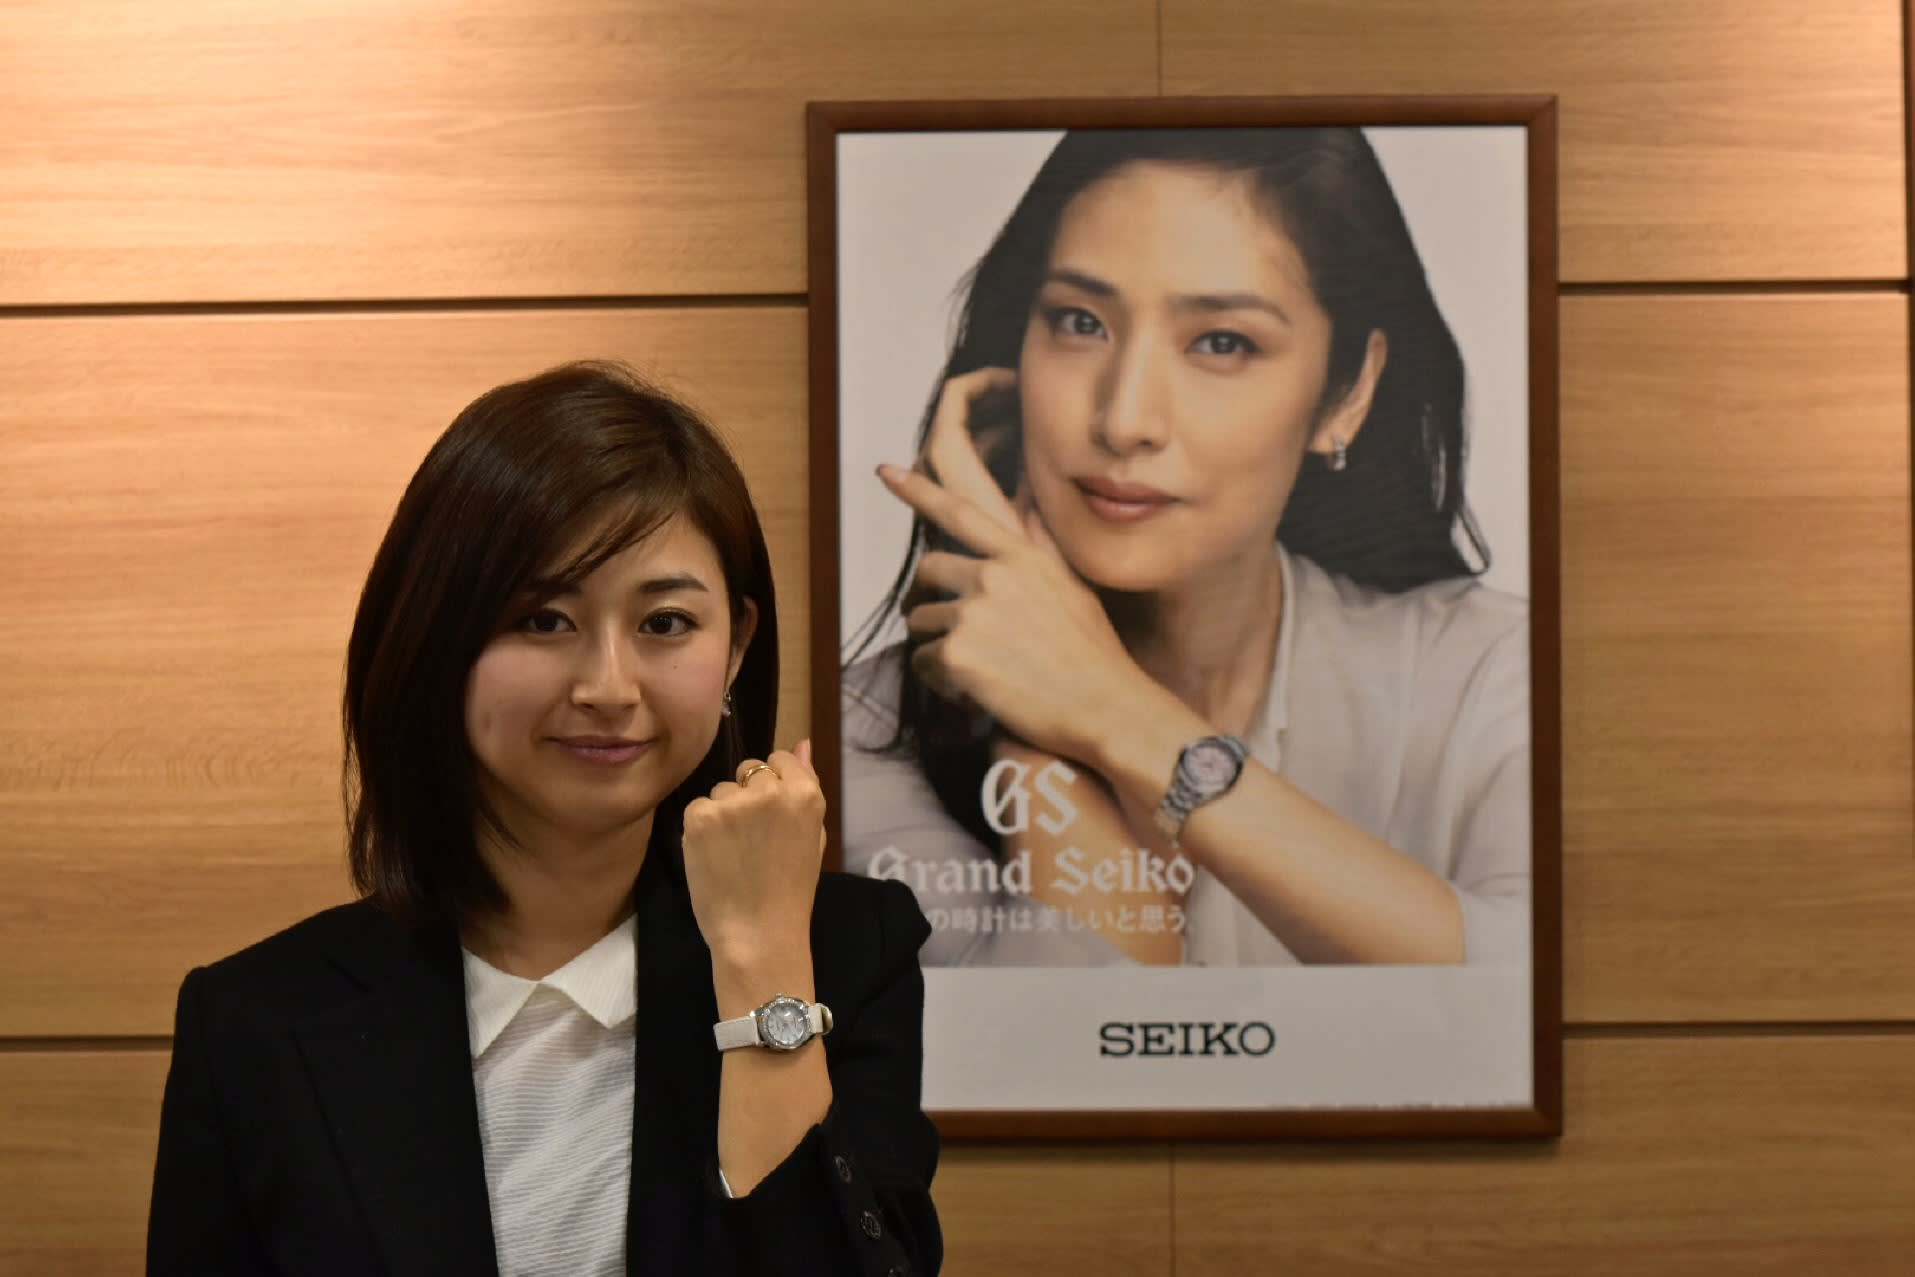 Seiko Diver's & chicasss - Página 4 Https%3A%2F%2Fs3-ap-northeast-1.amazonaws.com%2Fpsh-ex-ftnikkei-3937bb4%2Fimages%2F8%2F3%2F1%2F9%2F2309138-7-eng-GB%2F20170322_Seiko-GS-for-working-women